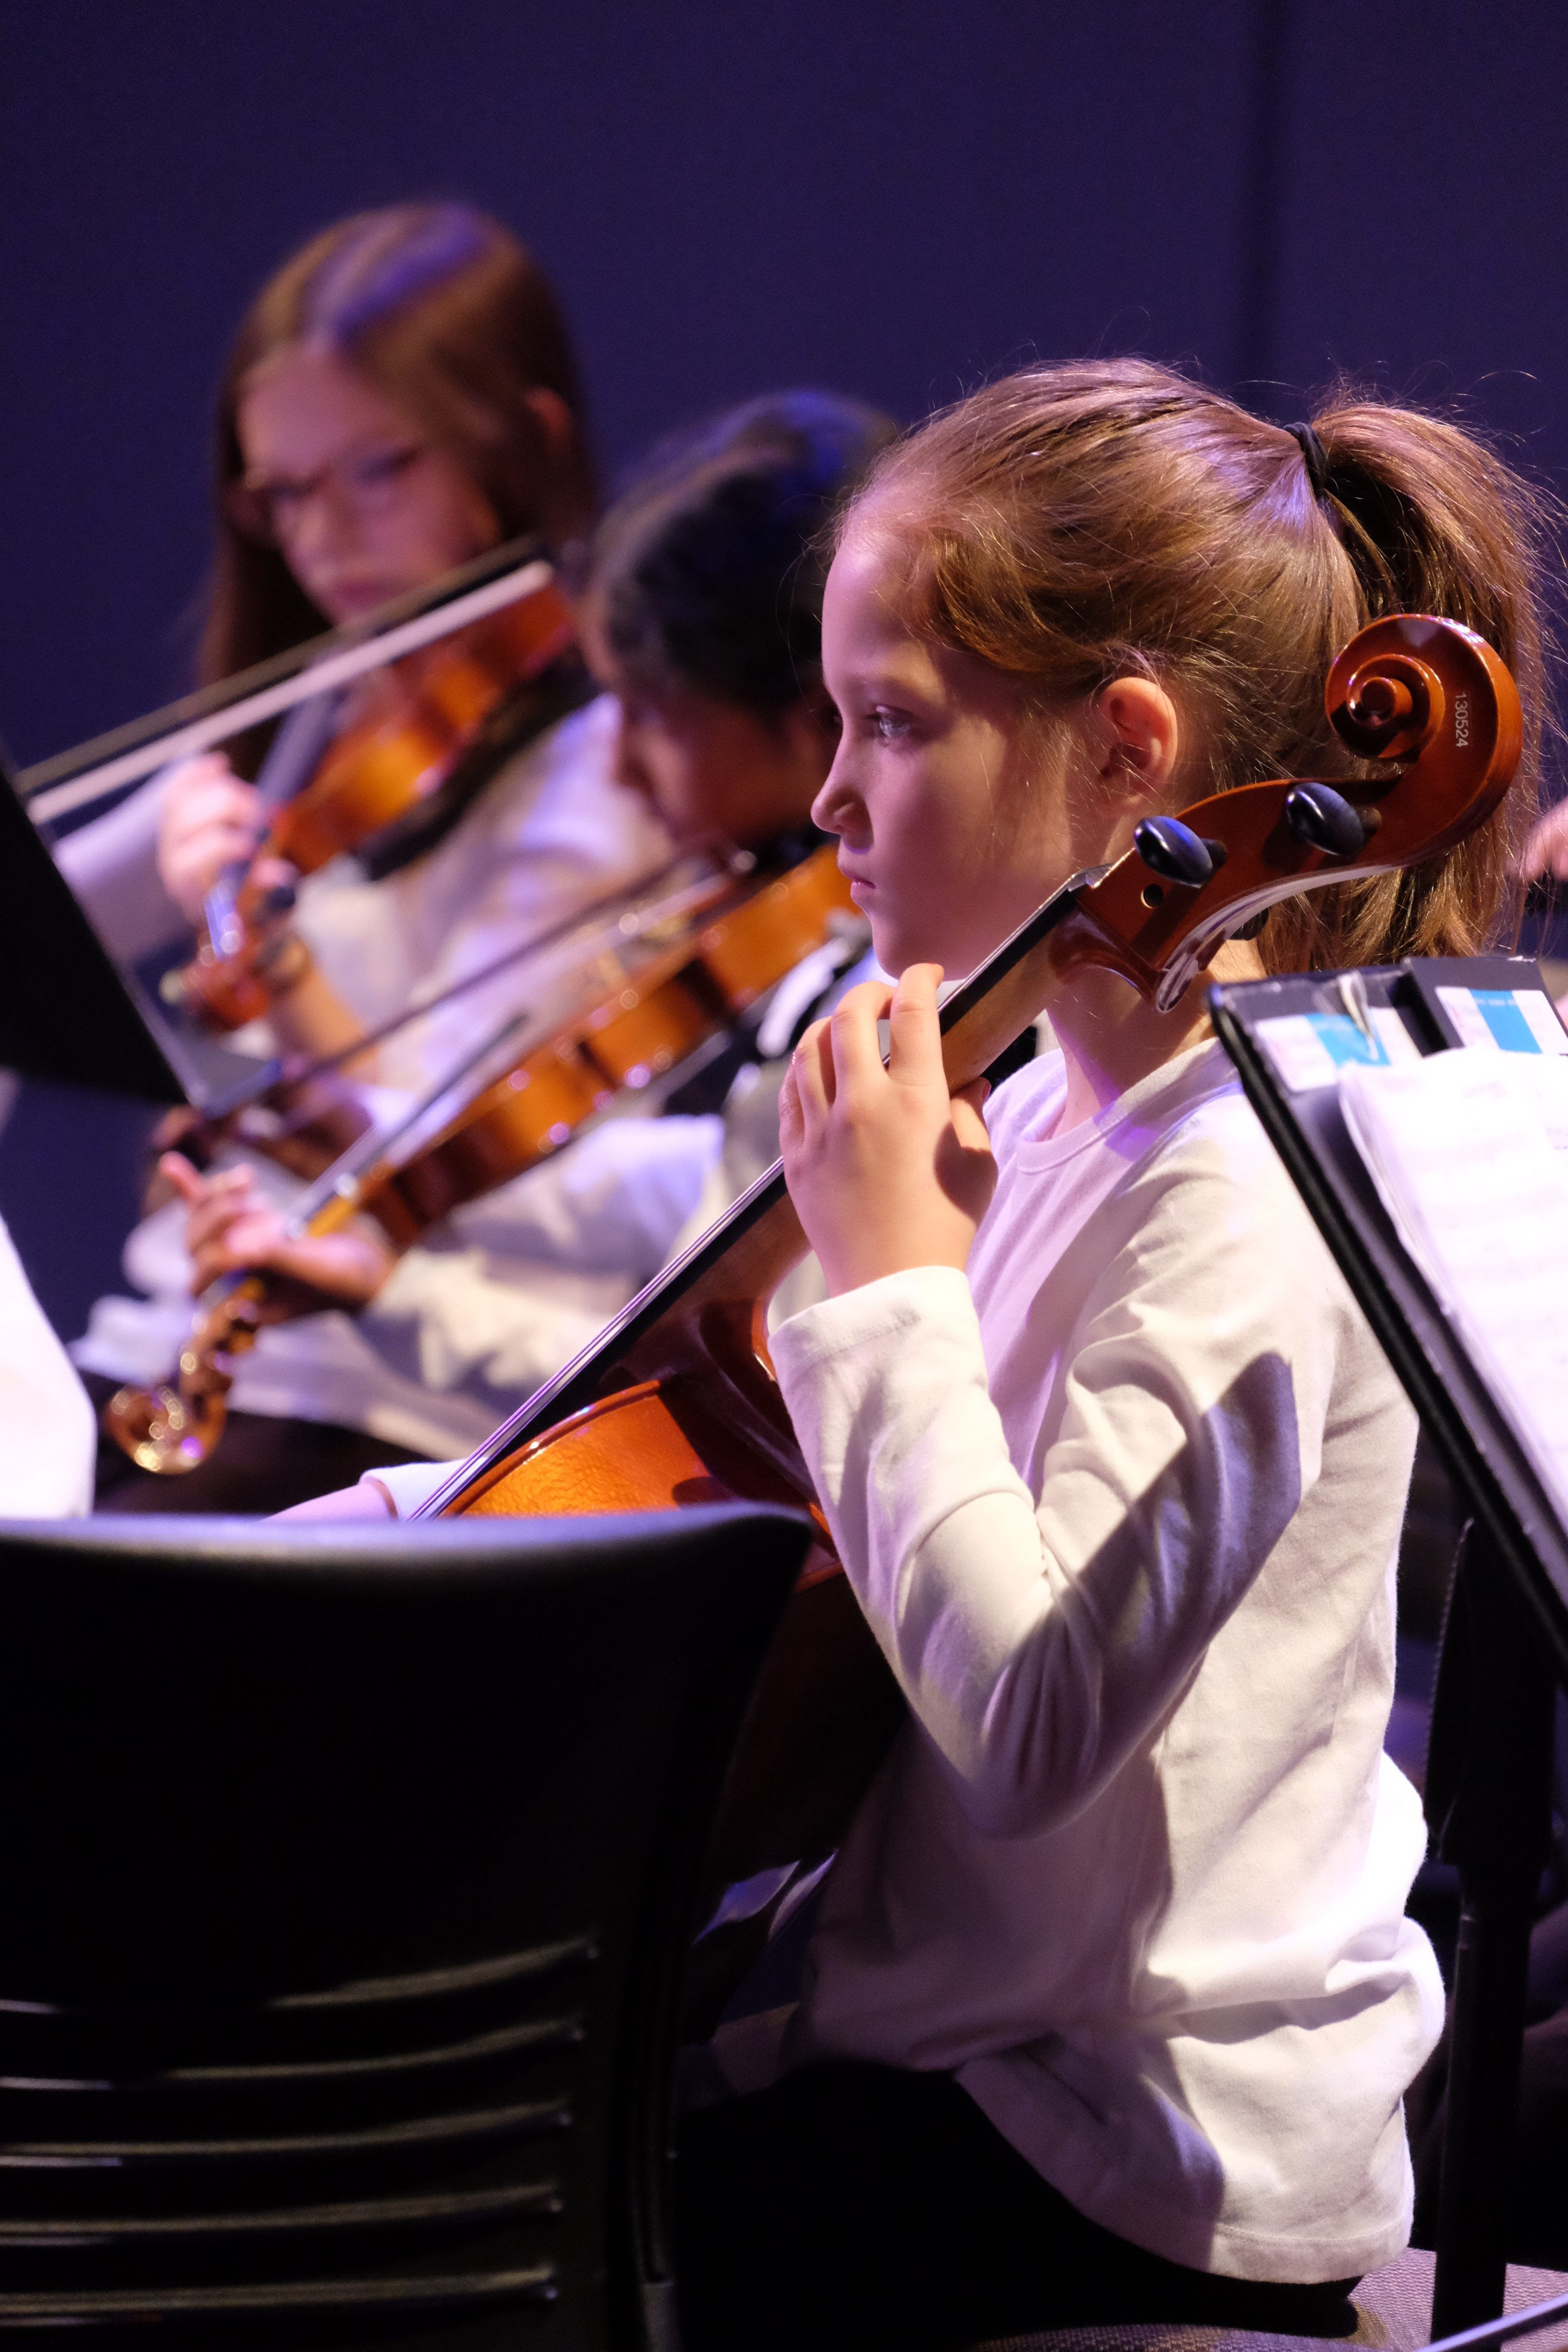 photo of string orchestra cellists during a concert